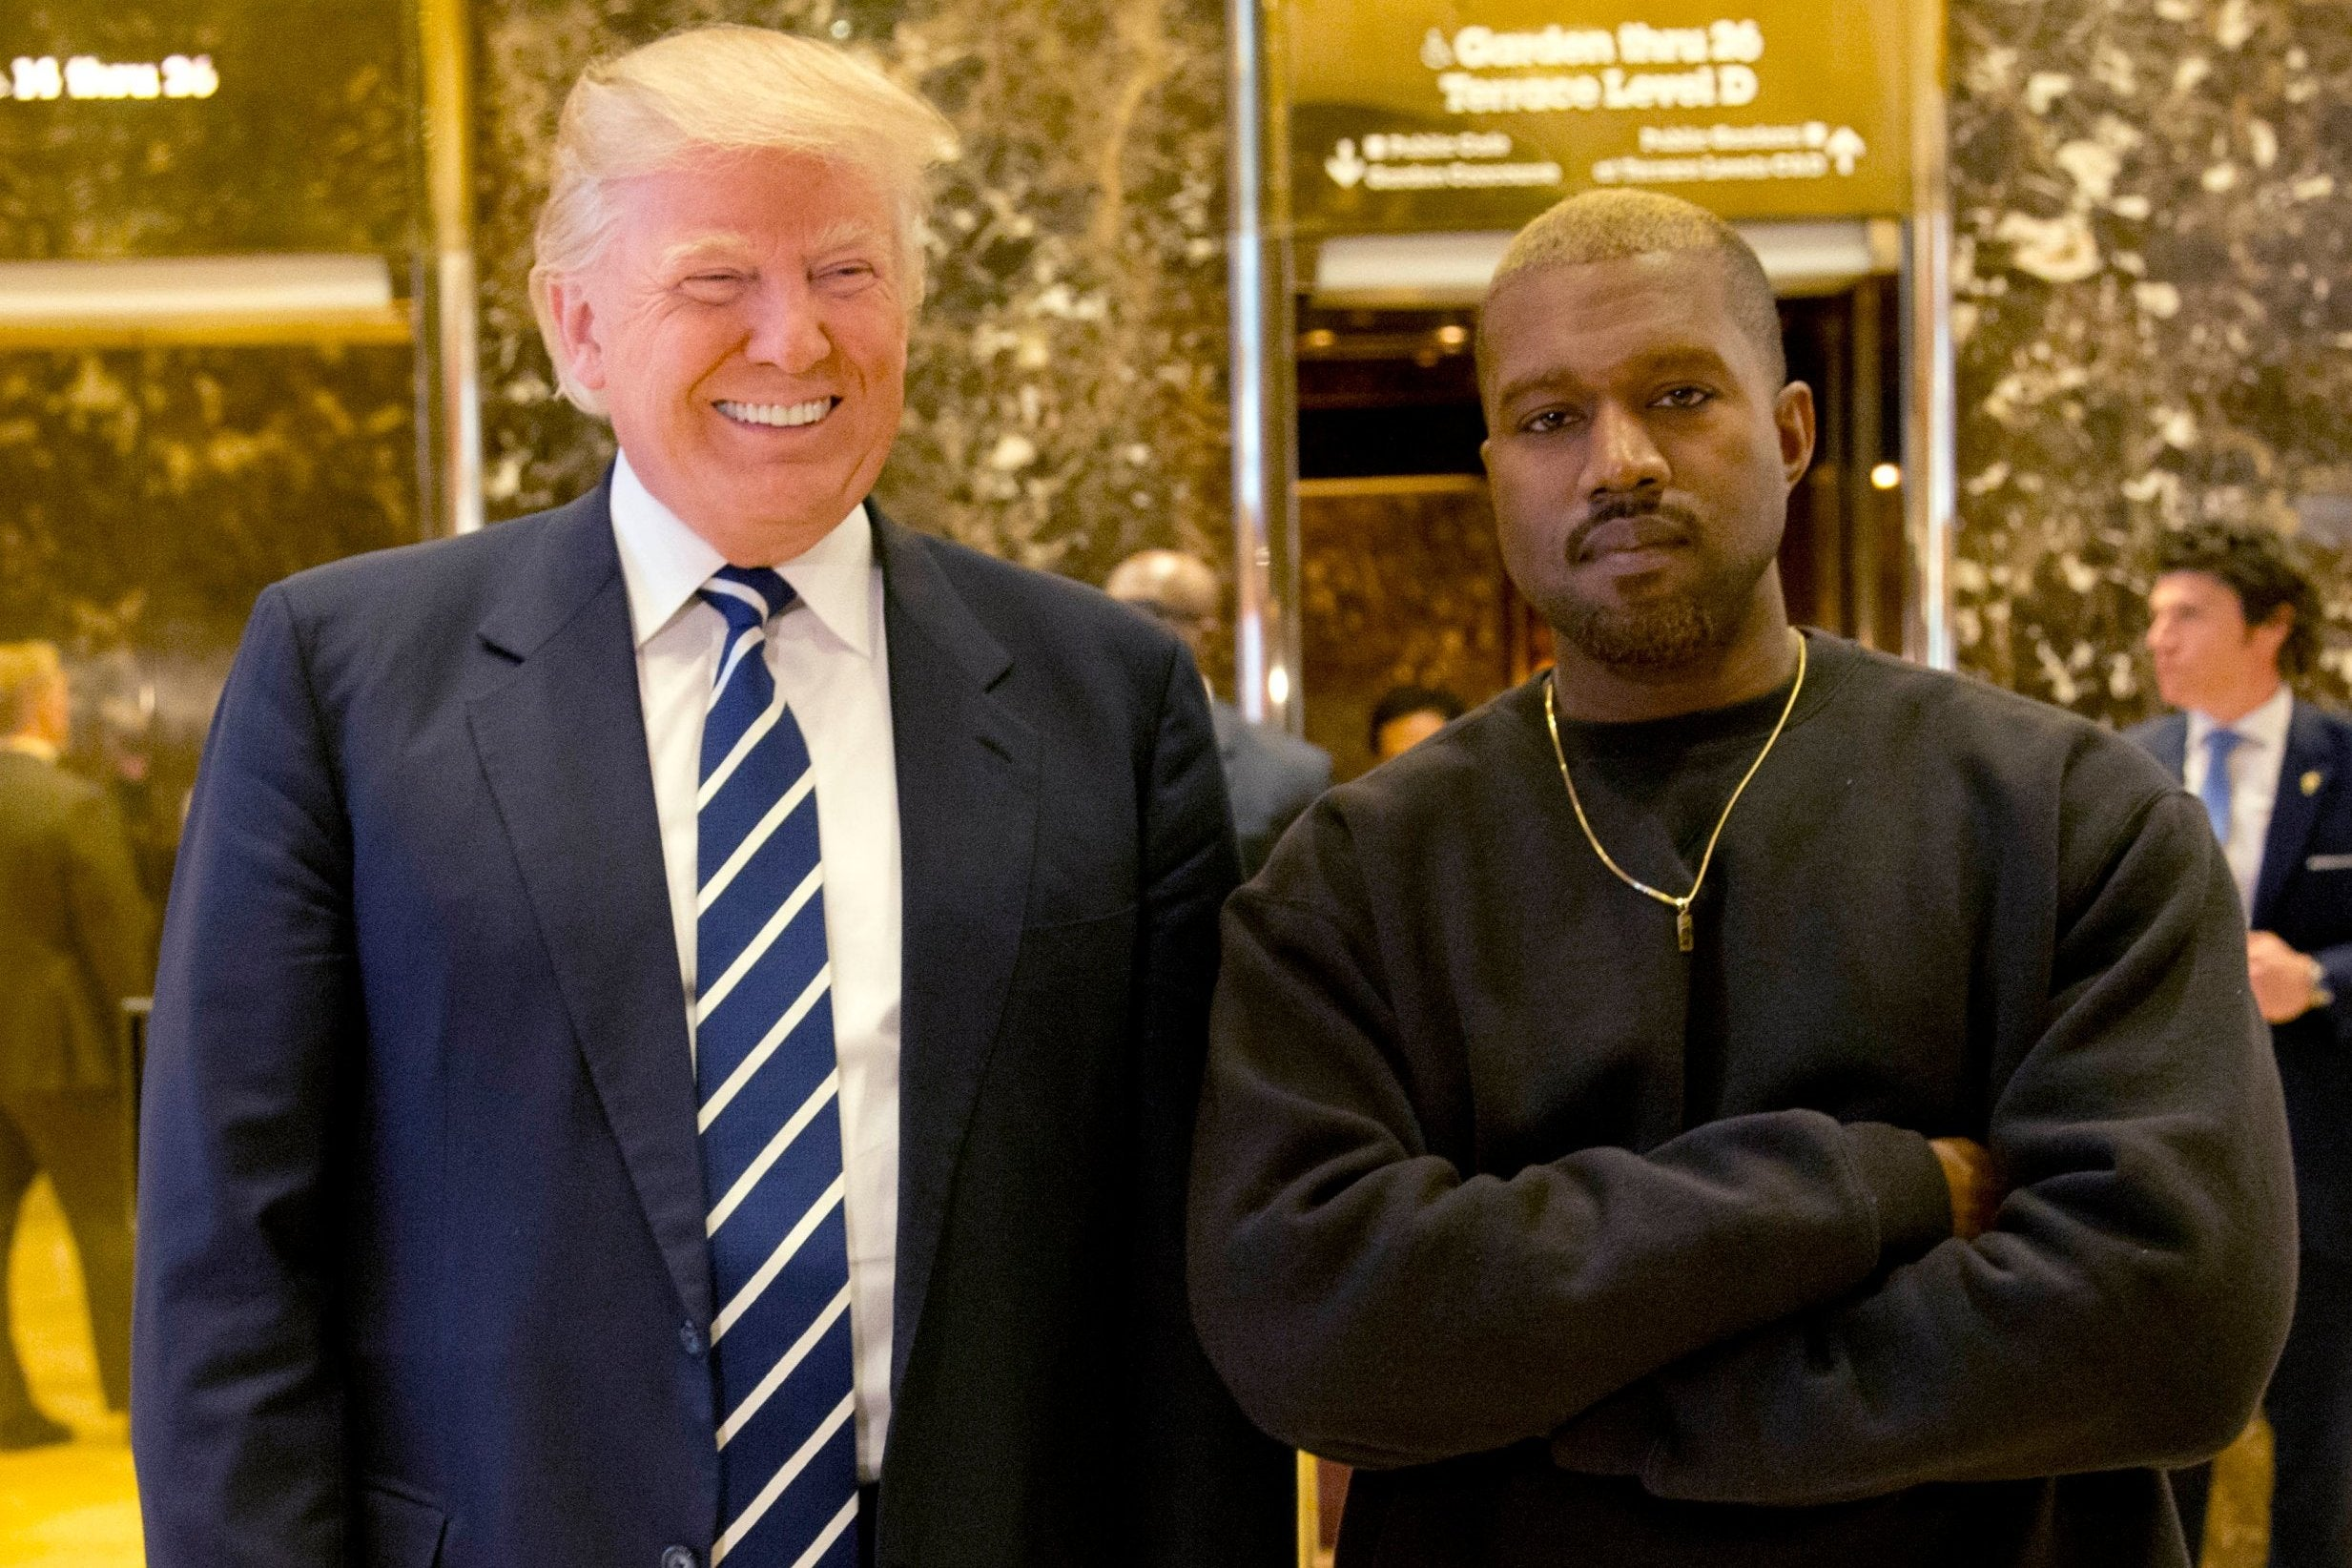 Trump-Kanye meeting - LIVE: President hosts lunch with Kanye West at White House